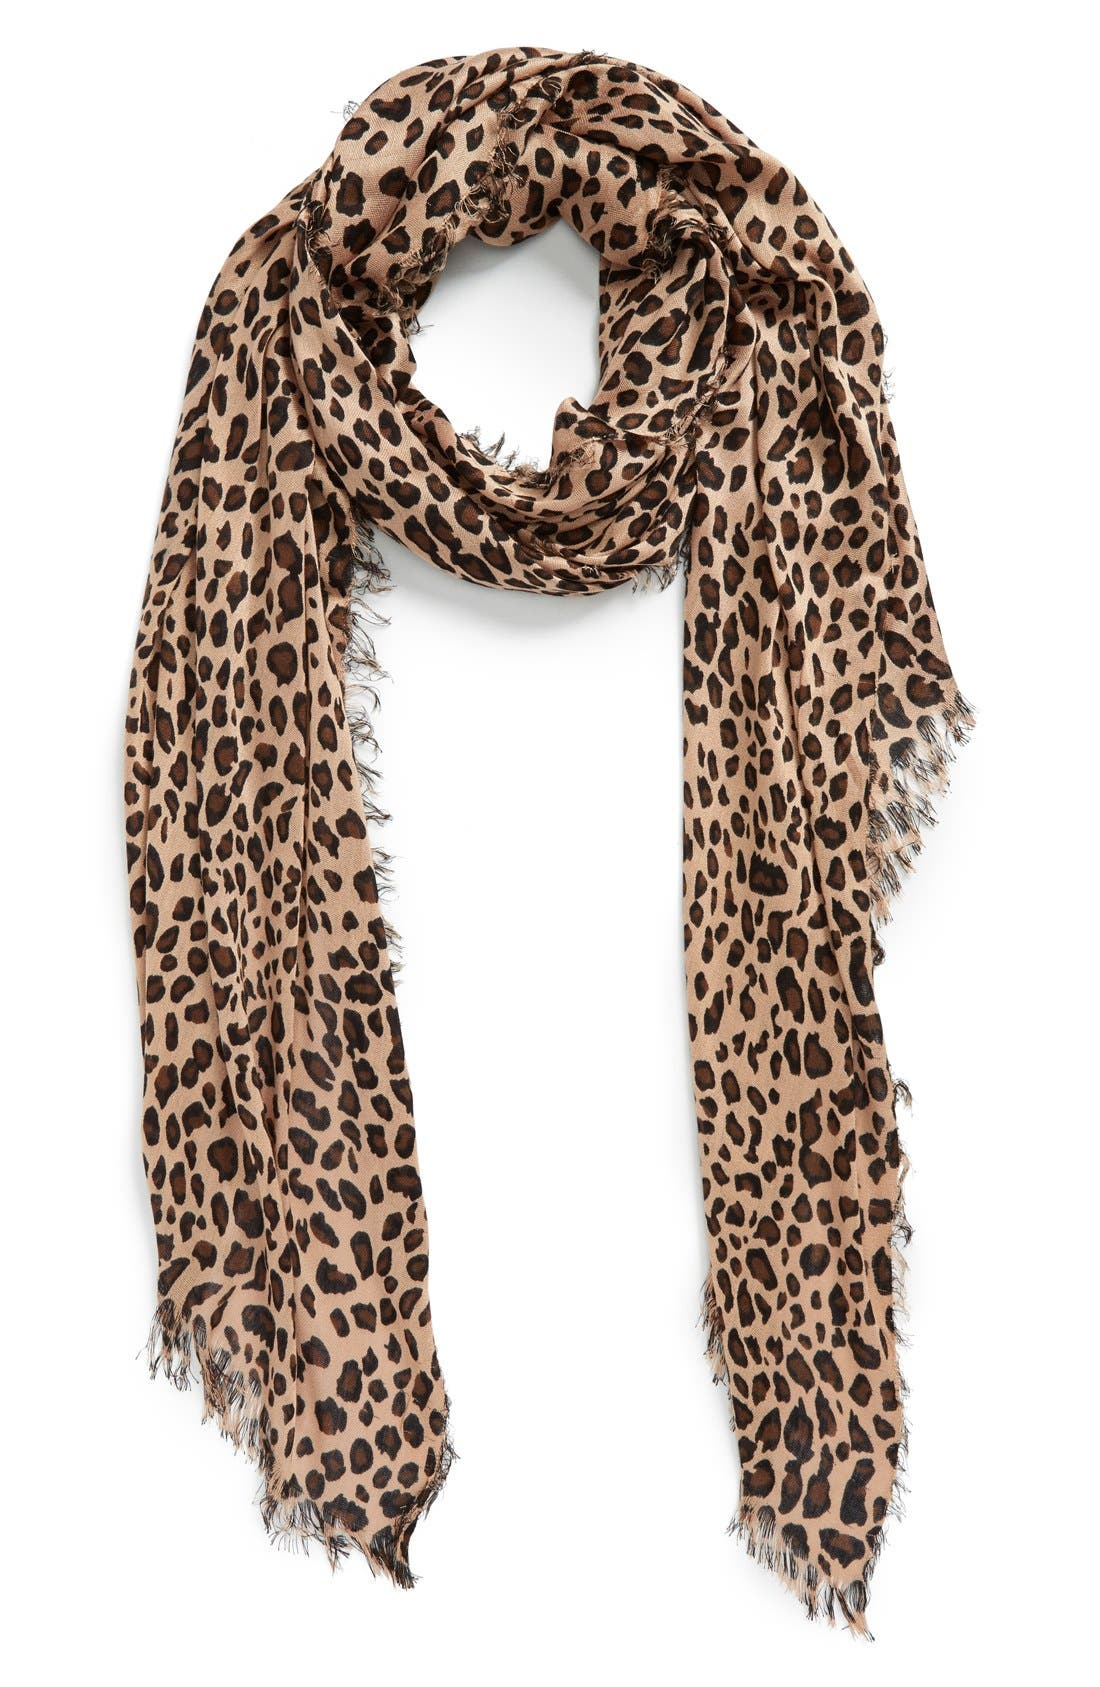 SOLE SOCIETY, Leopard Print Scarf, Main thumbnail 1, color, BROWN